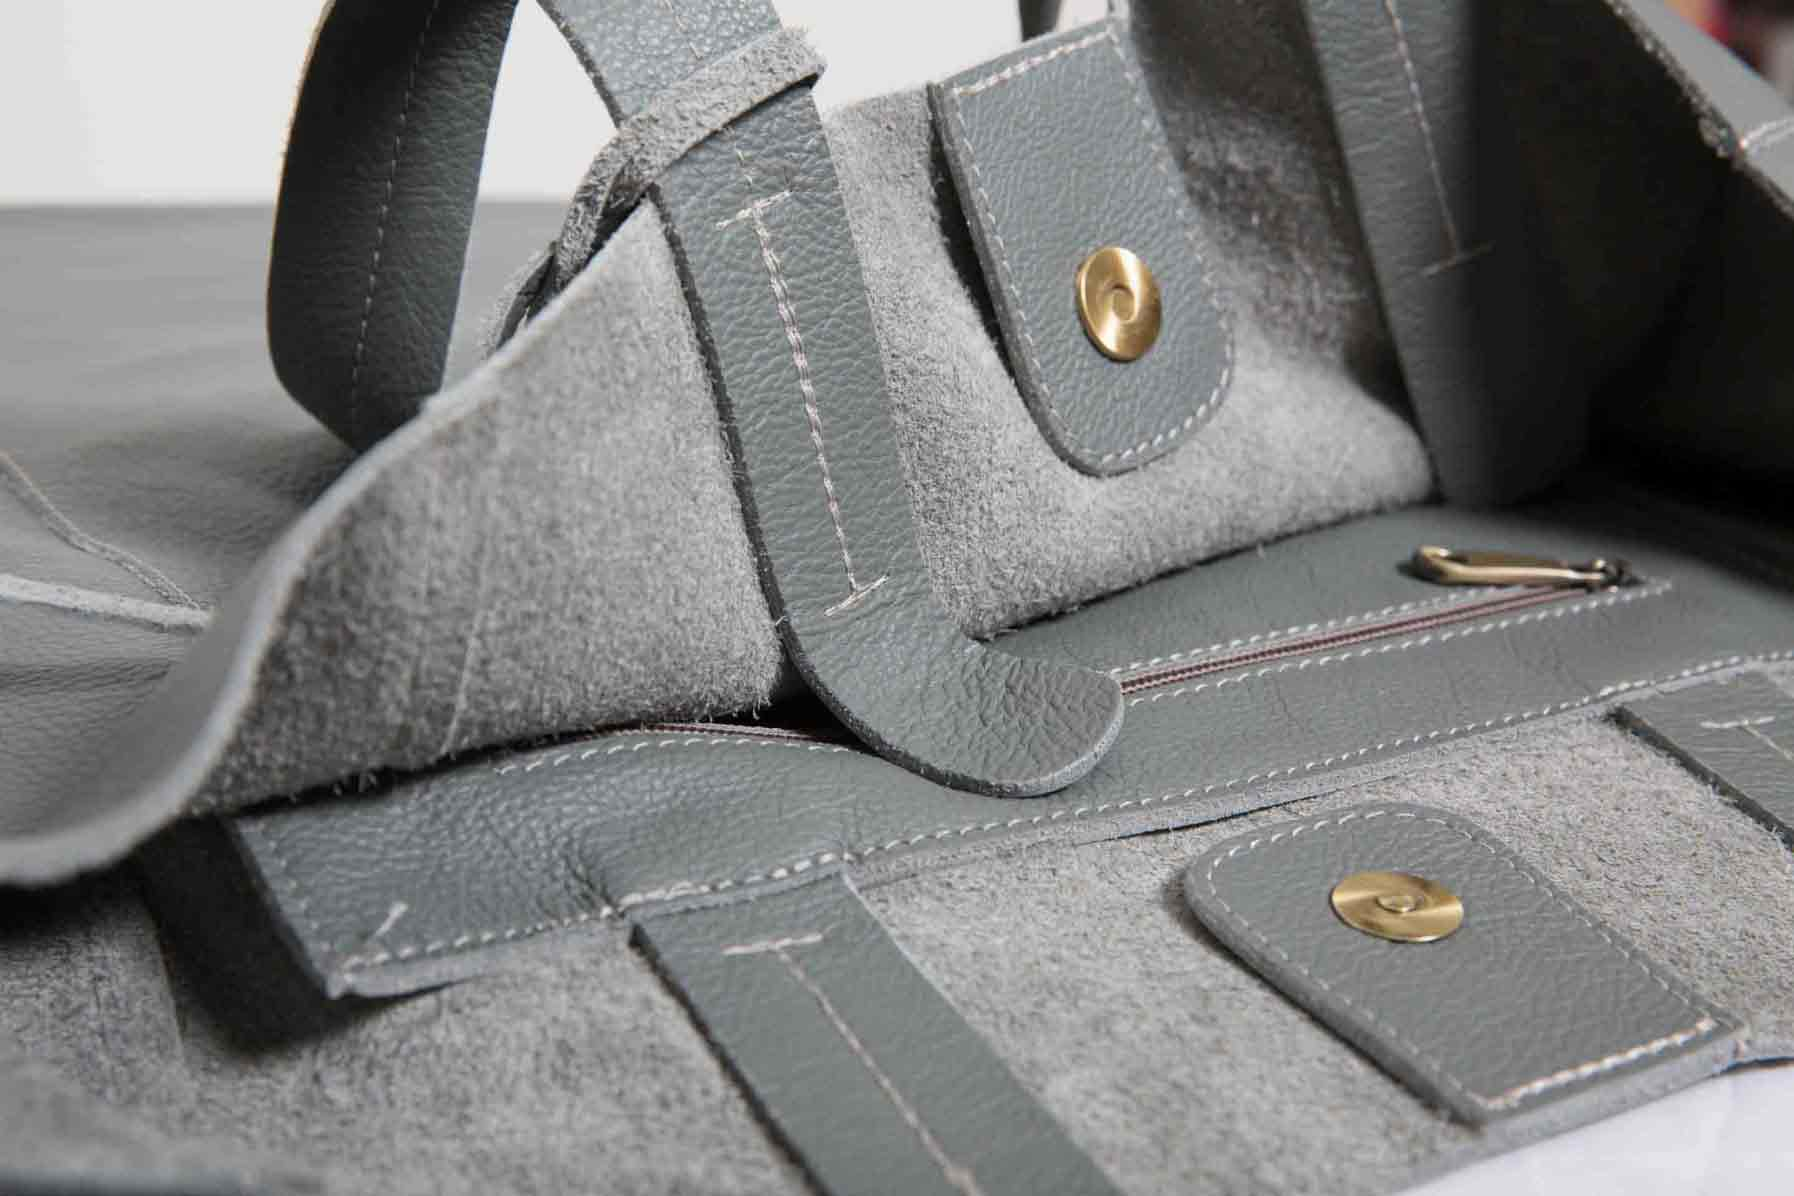 Visuel Sac - Détails Grand Shopper Cuir Gris Ciment - ordinari.shop